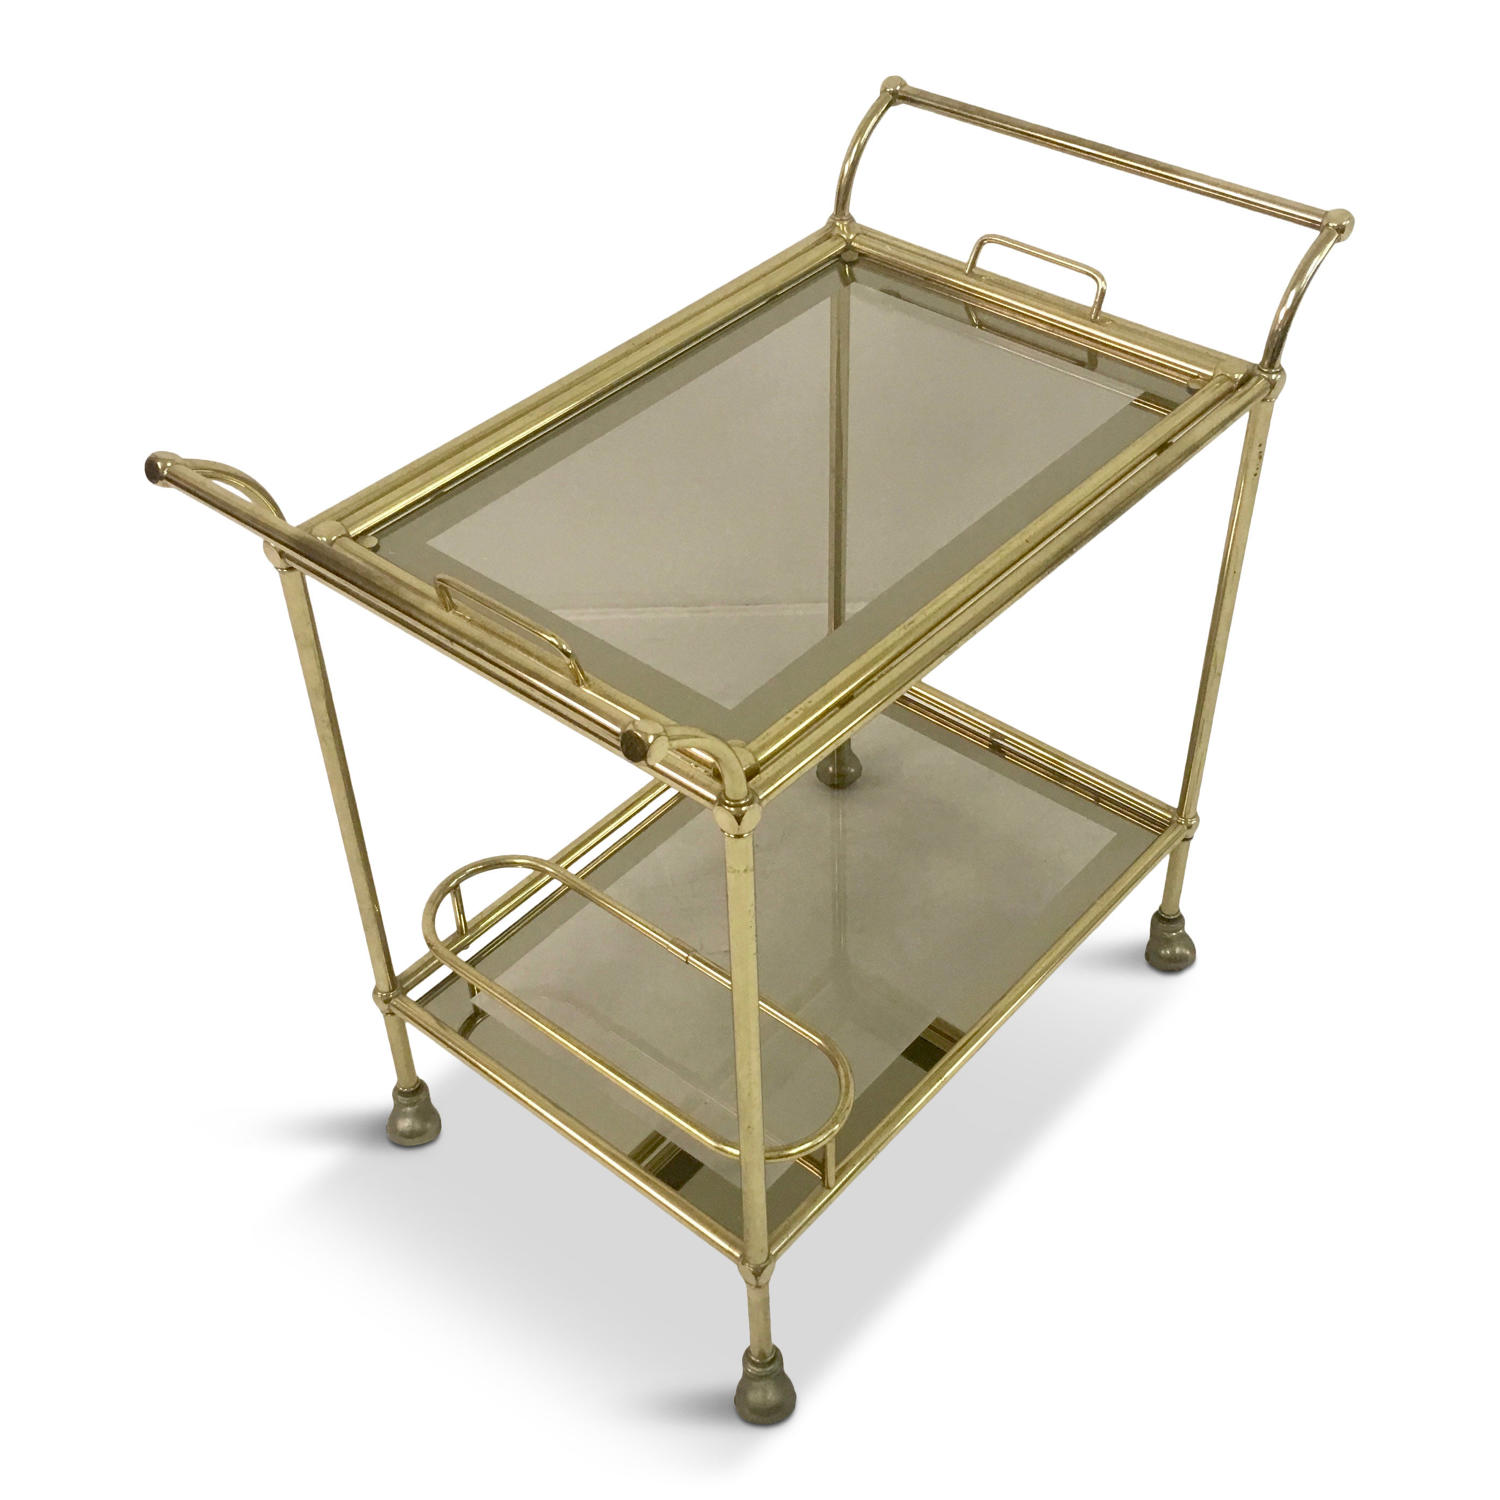 1970s Italian brass trolley or drinks cart